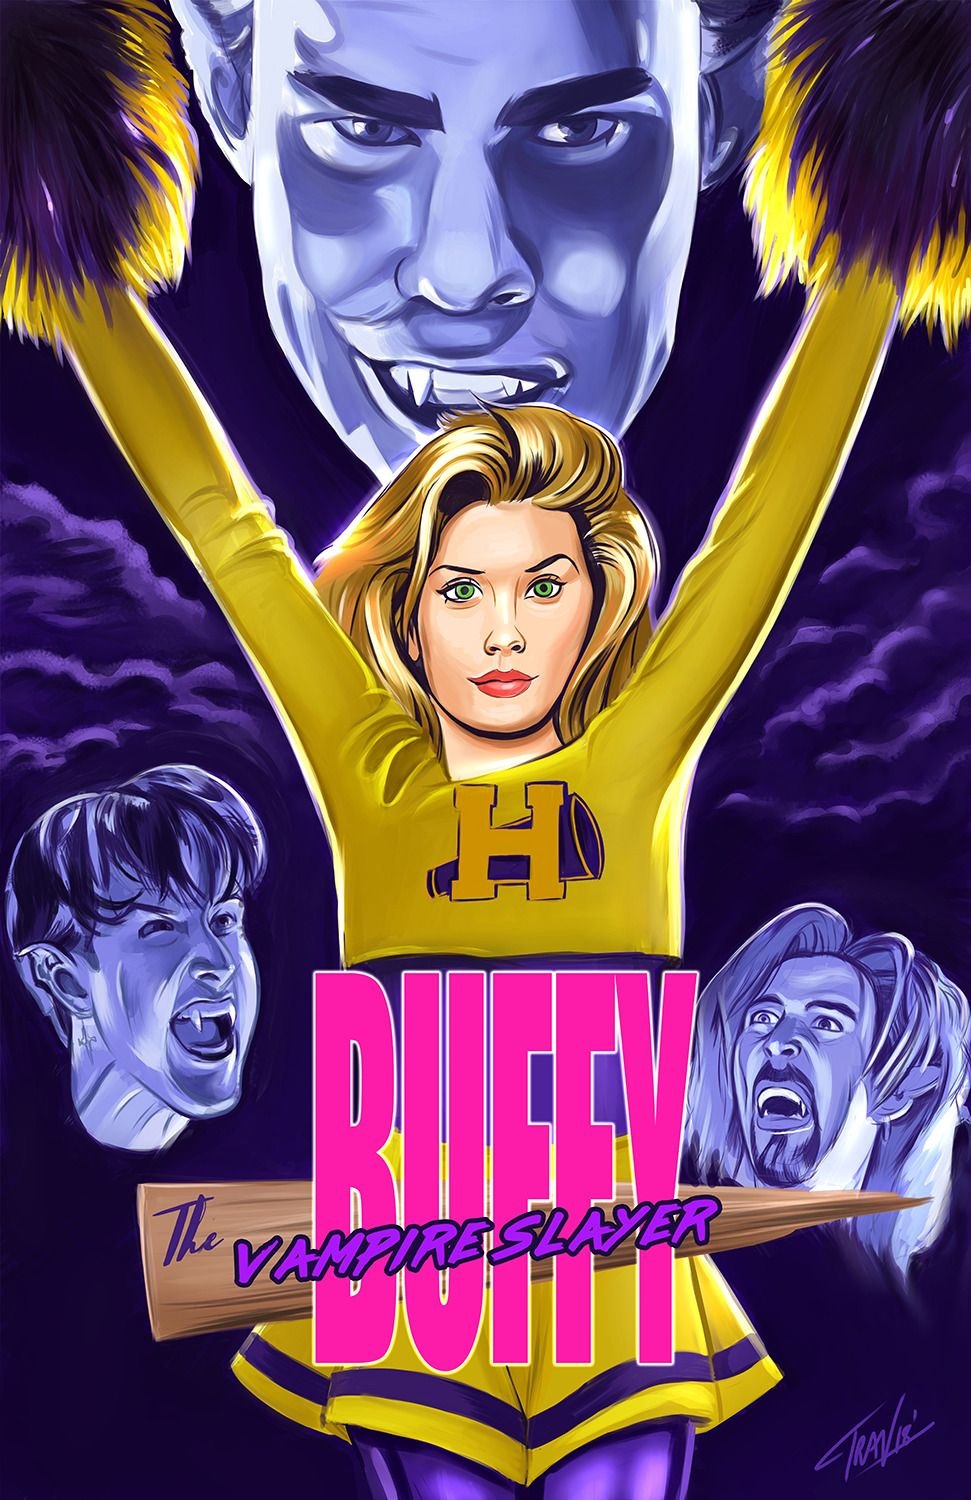 """952fd52c37b ibtravart: """"Recent poster art for upcoming screening of """"Buffy the Vampire  Slayer"""" October 11 in Roanoke VA at the South County Library. """""""